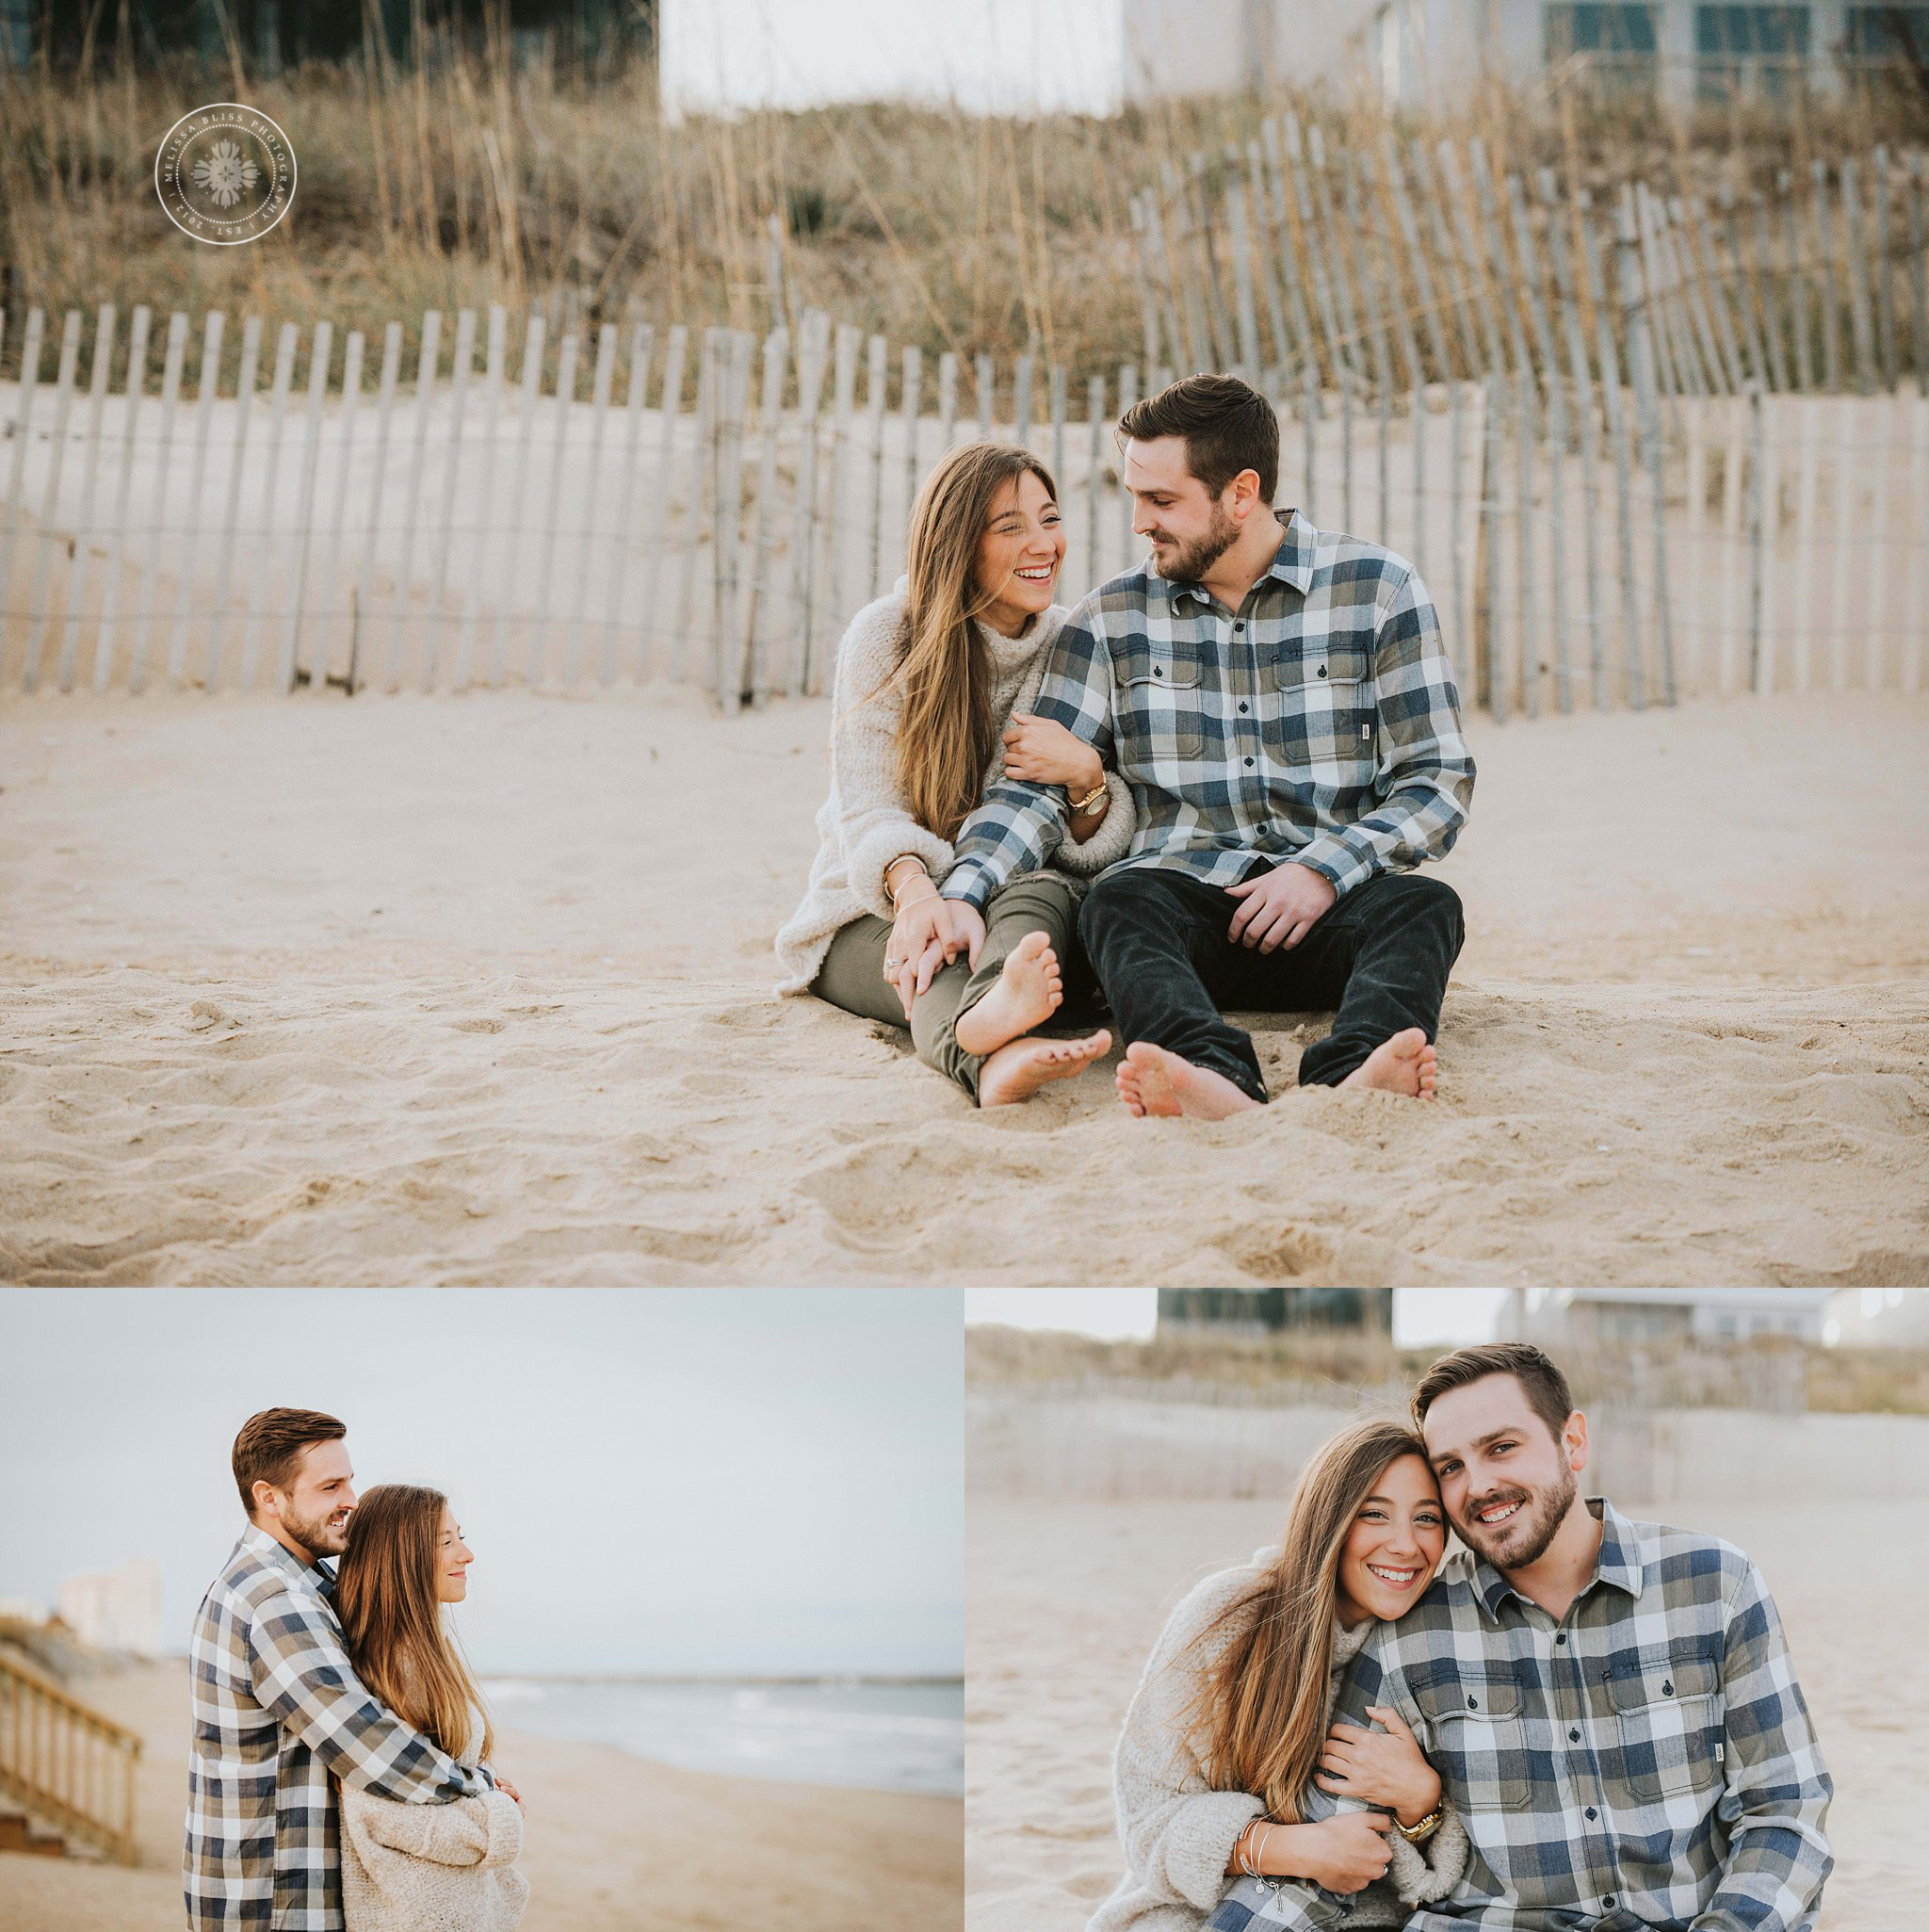 melissa-bliss-photography-virginia-beach-engagment-photographers-norfolk-portsmouth-chesapeake-wedding-photographer-hampton-roads-best-wedding-photographers-va-wedding-photography